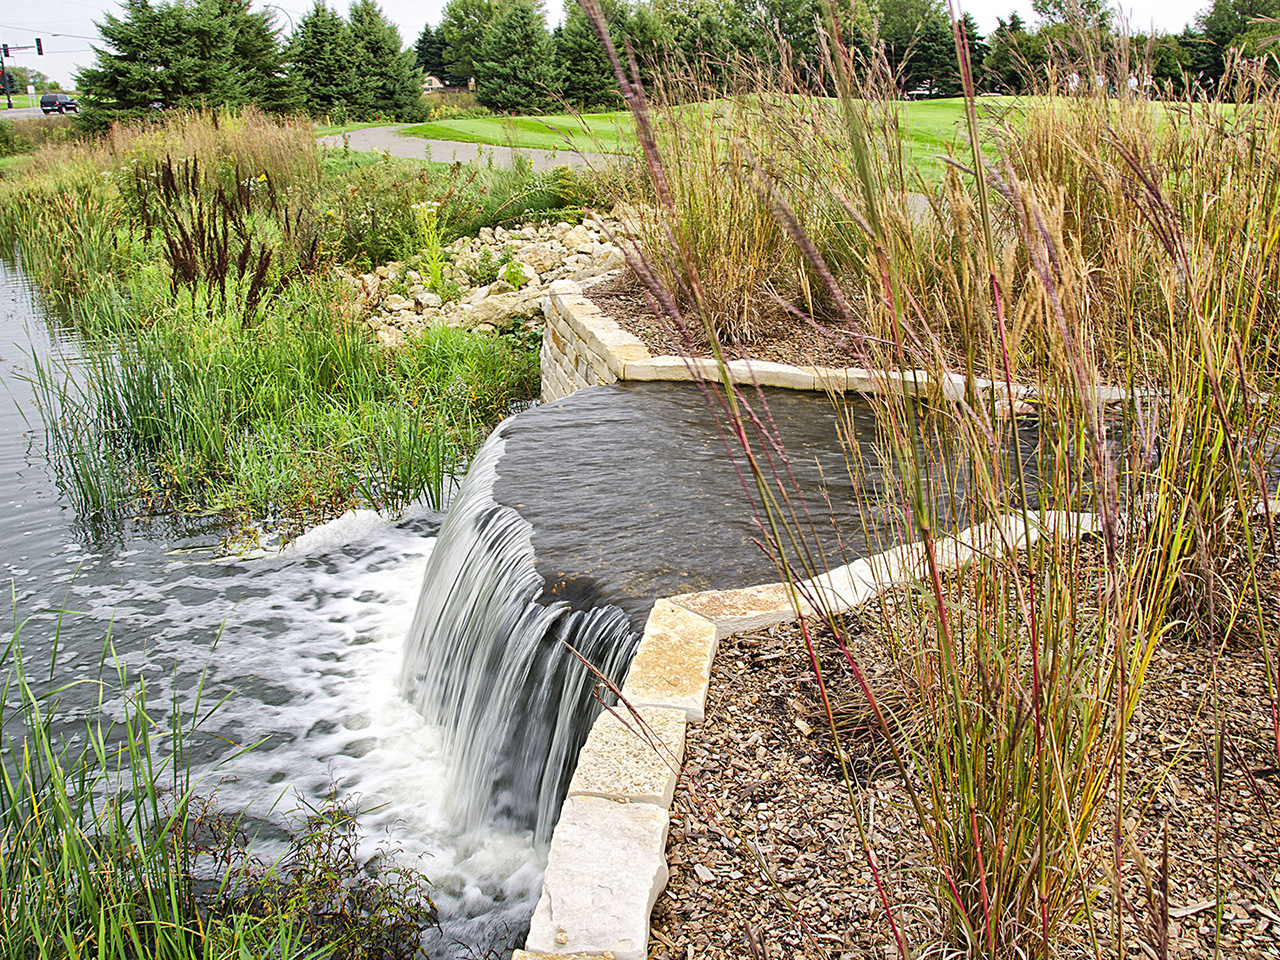 stormwater captured and reused for irrigation